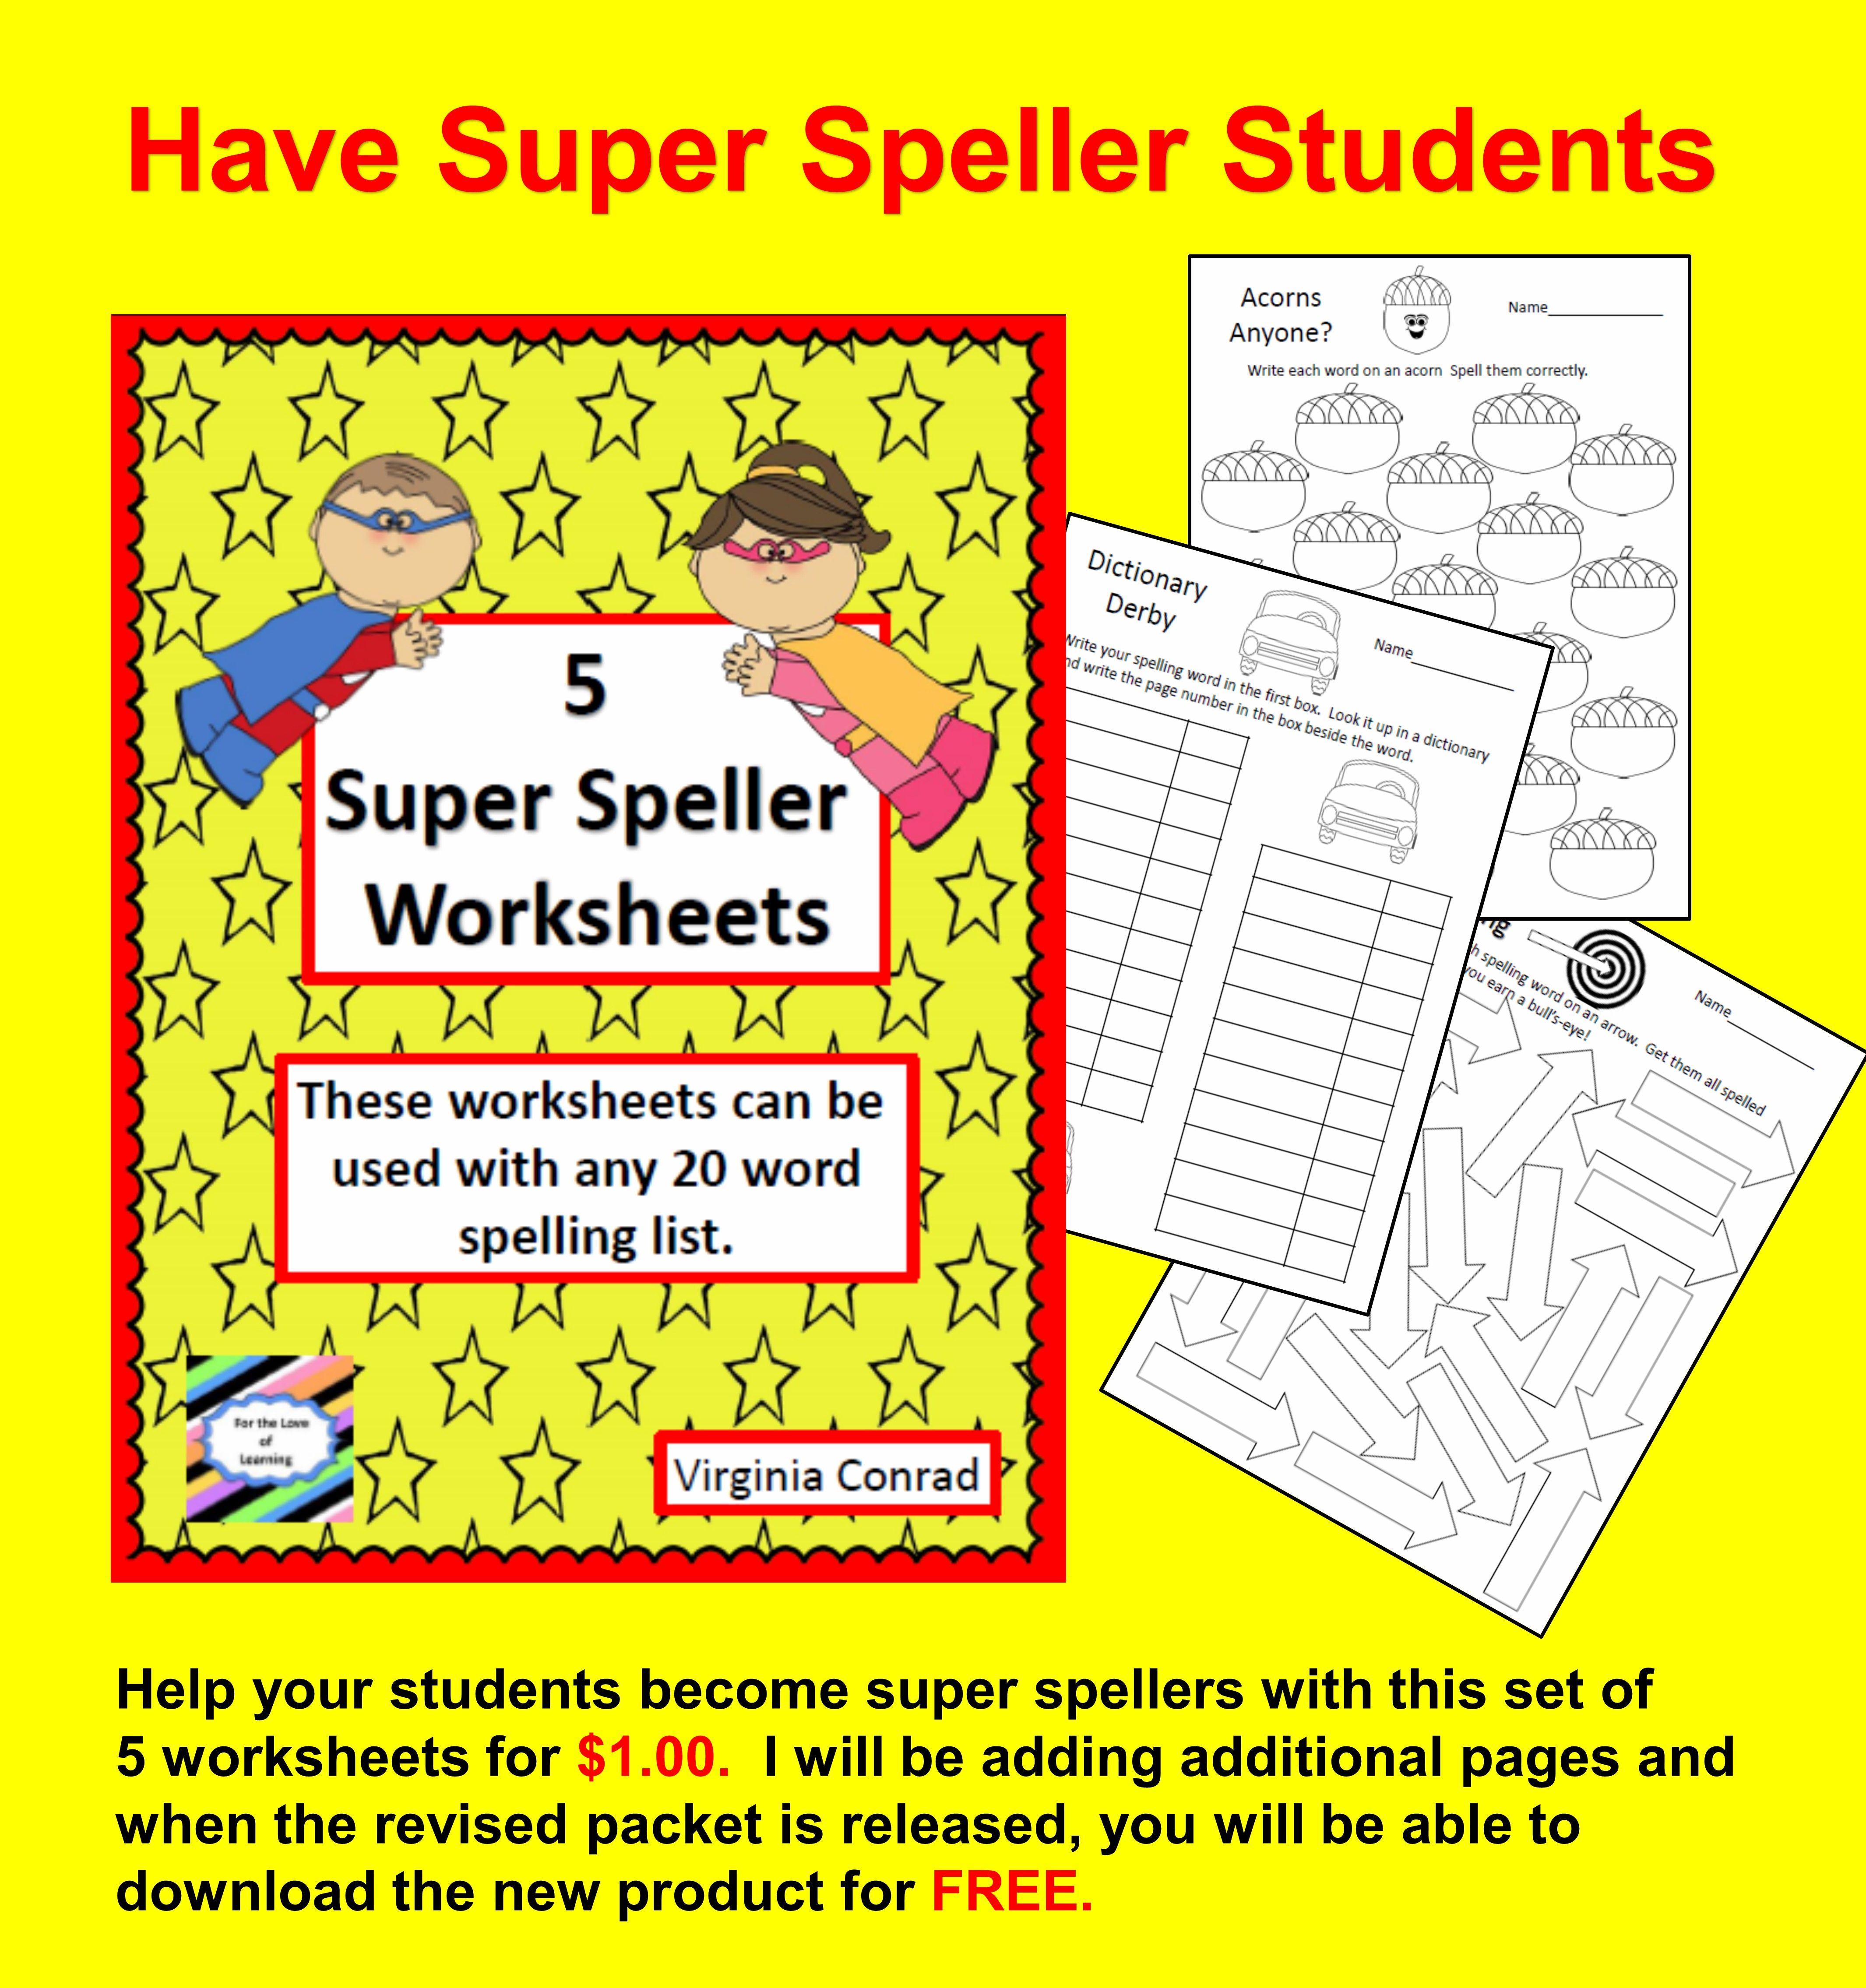 Super Speller Worksheets